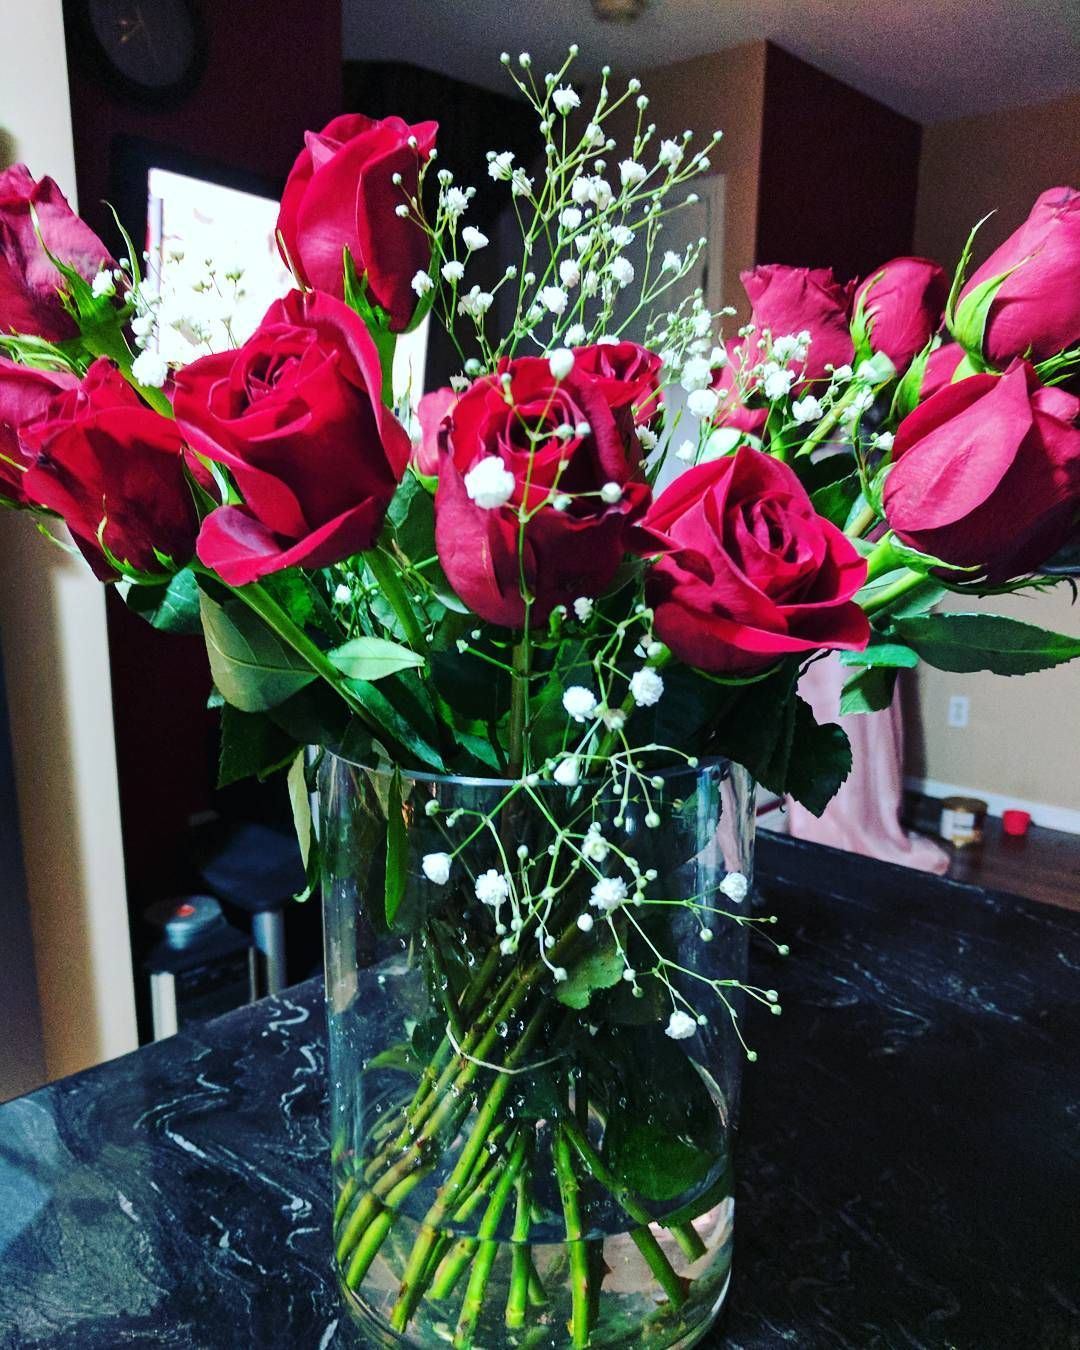 Long day working today came home to a wonderful red roses